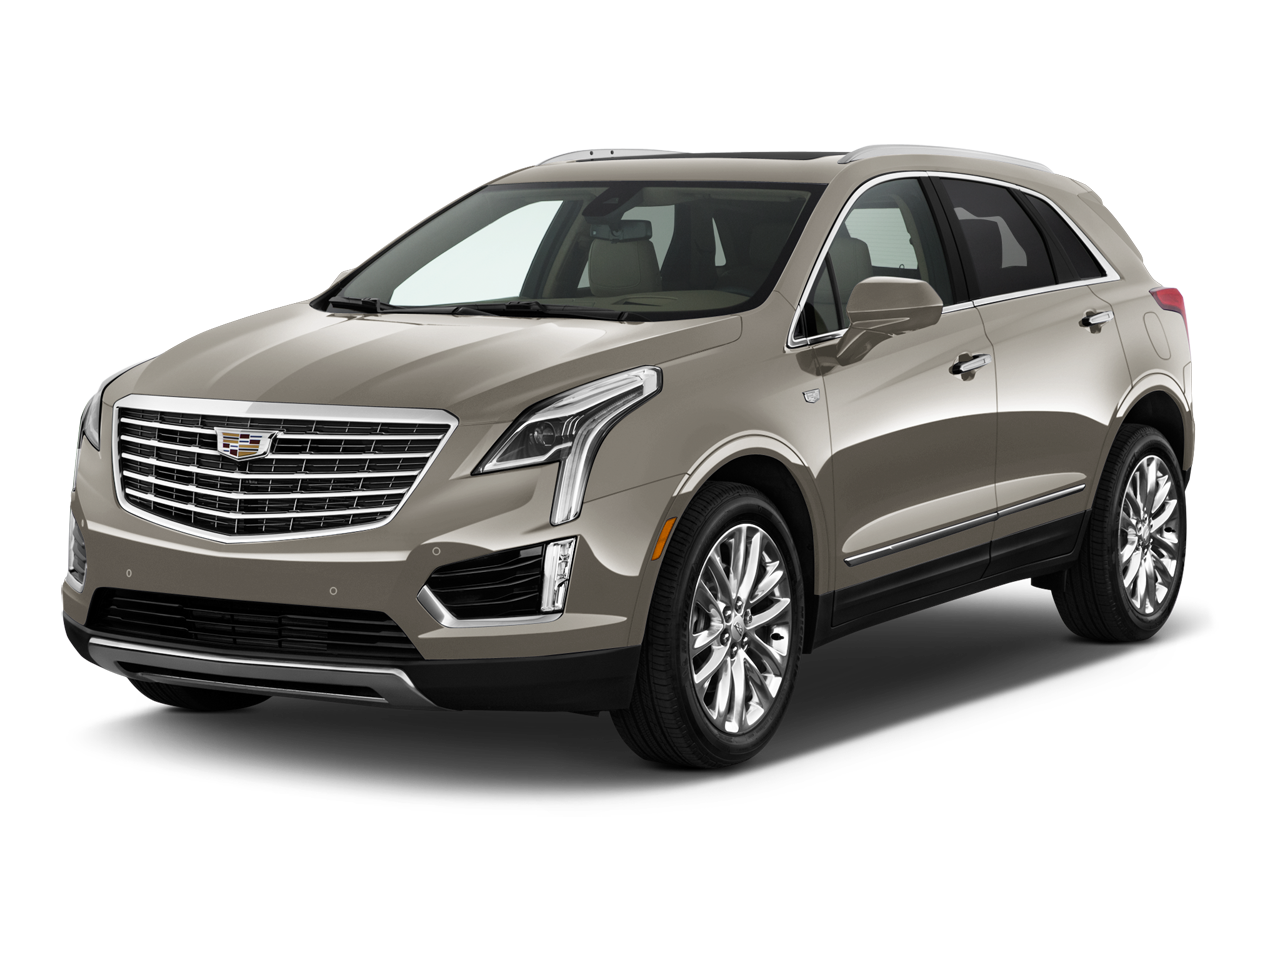 2017 Cadillac Xt5 Luxury New Car Release Date And Review 2018 Amanda Felicia